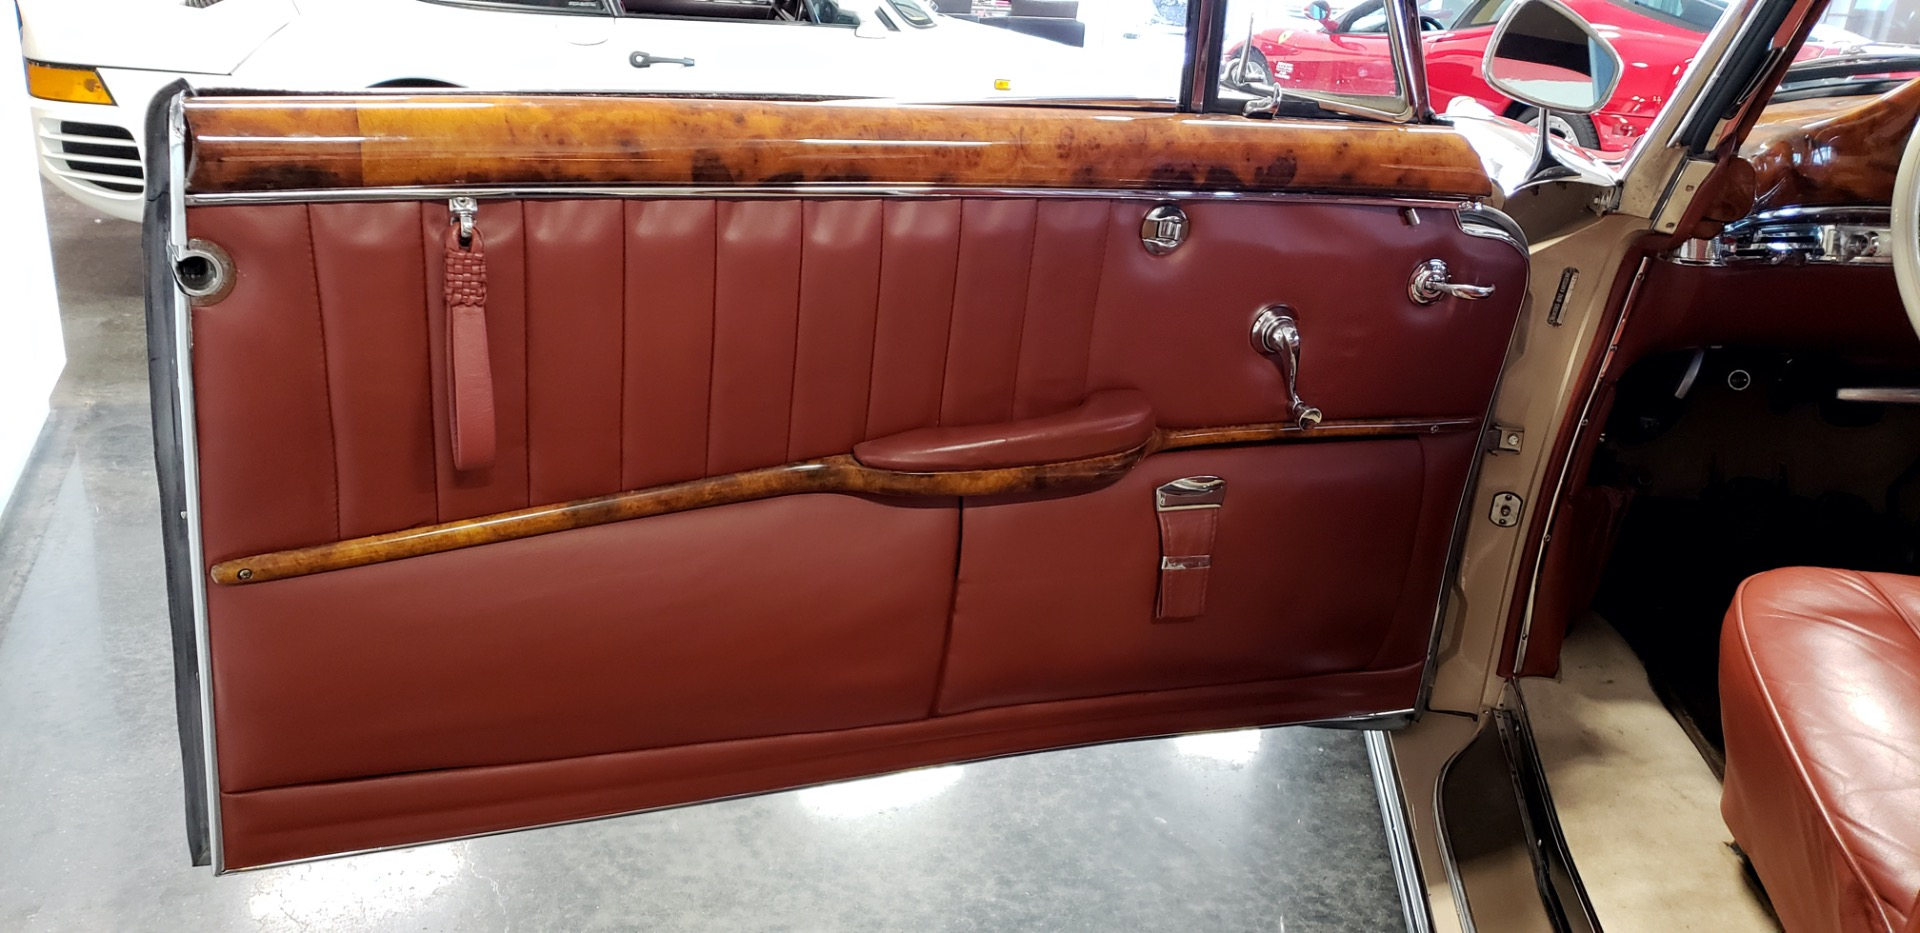 Used 1957 Mercedes-Benz 220 S Cabriolet - Full Restoration for sale Sold at Formula Imports in Charlotte NC 28227 18